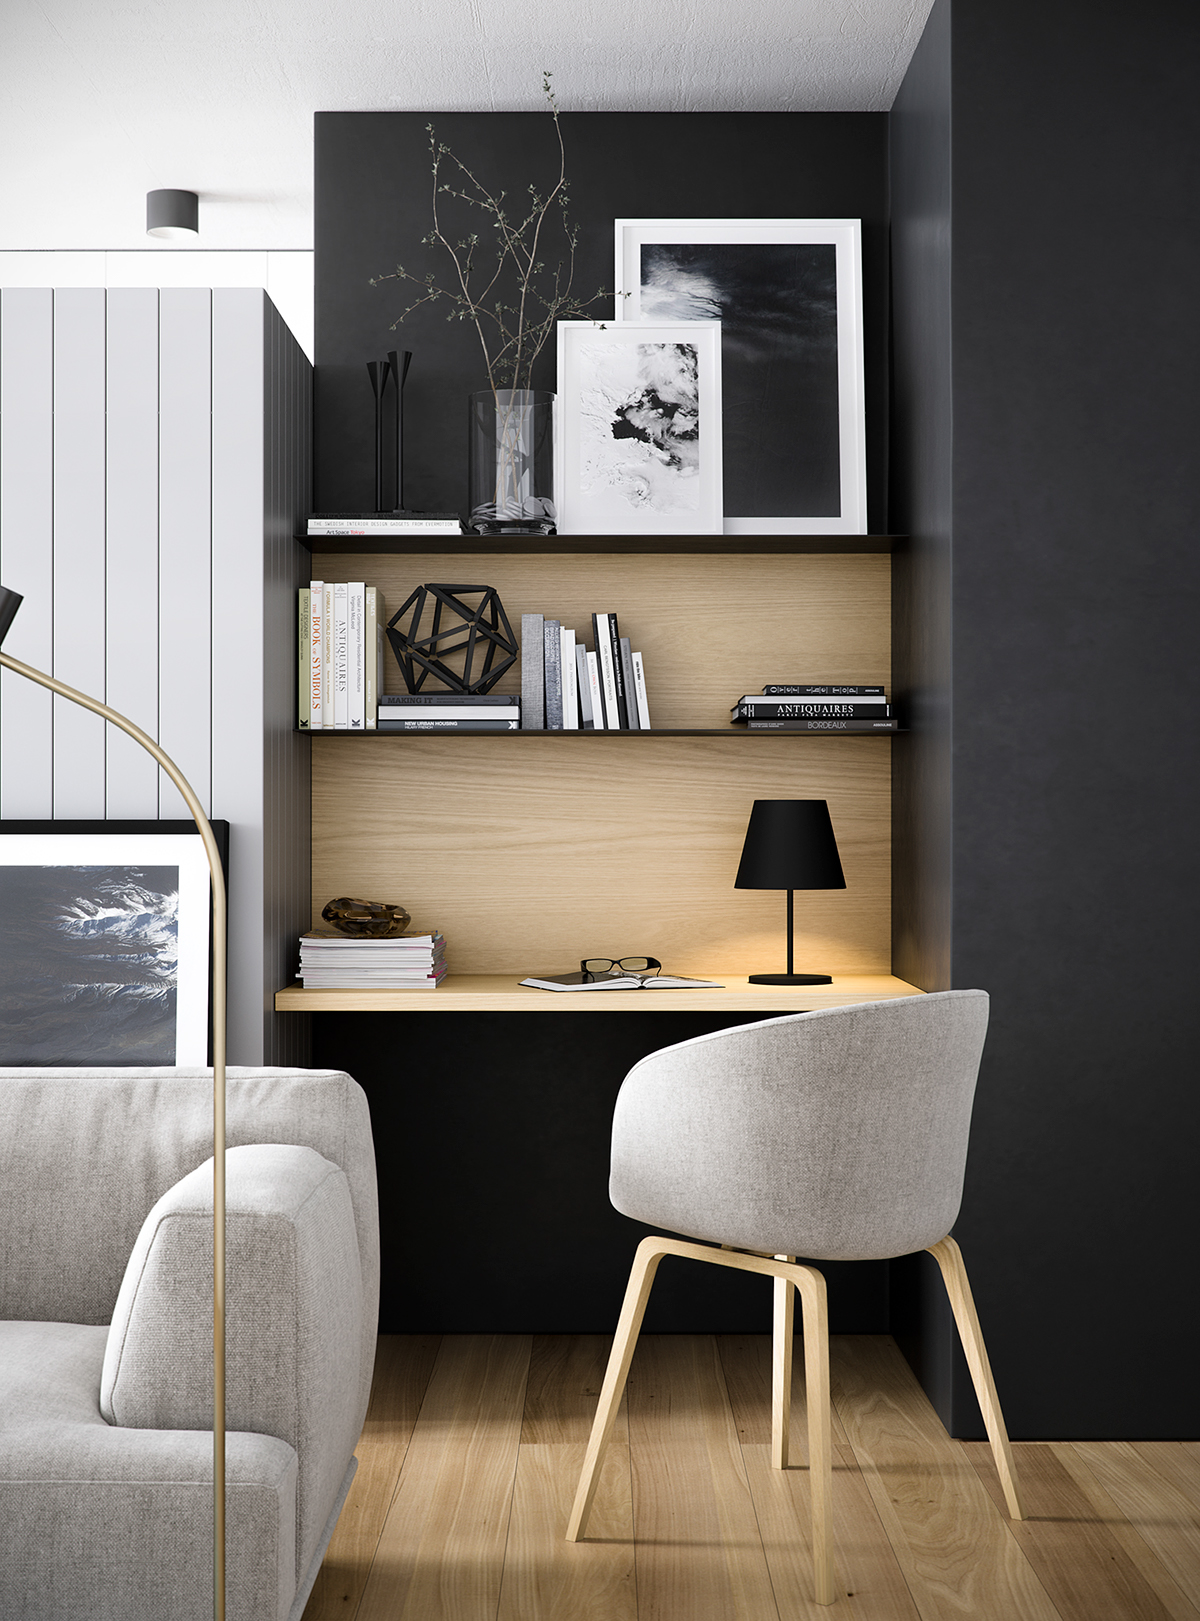 37 Minimalist Home Offices That Sport Simple But Stylish Workspaces images 3